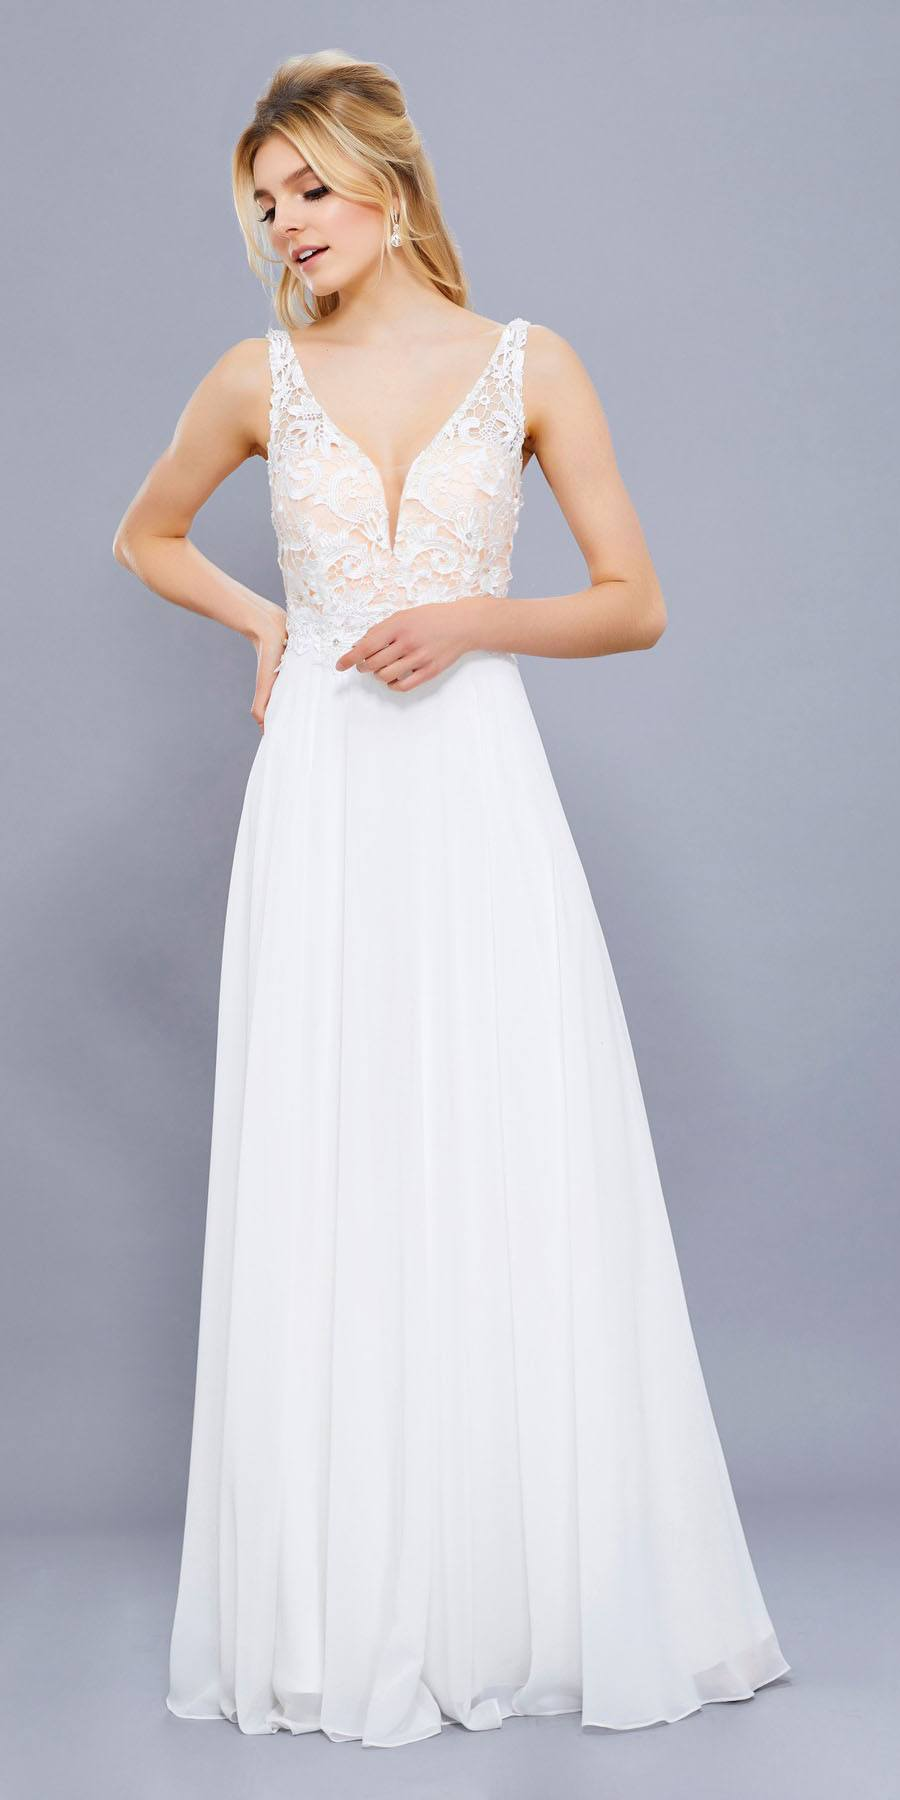 White low back formal dresses